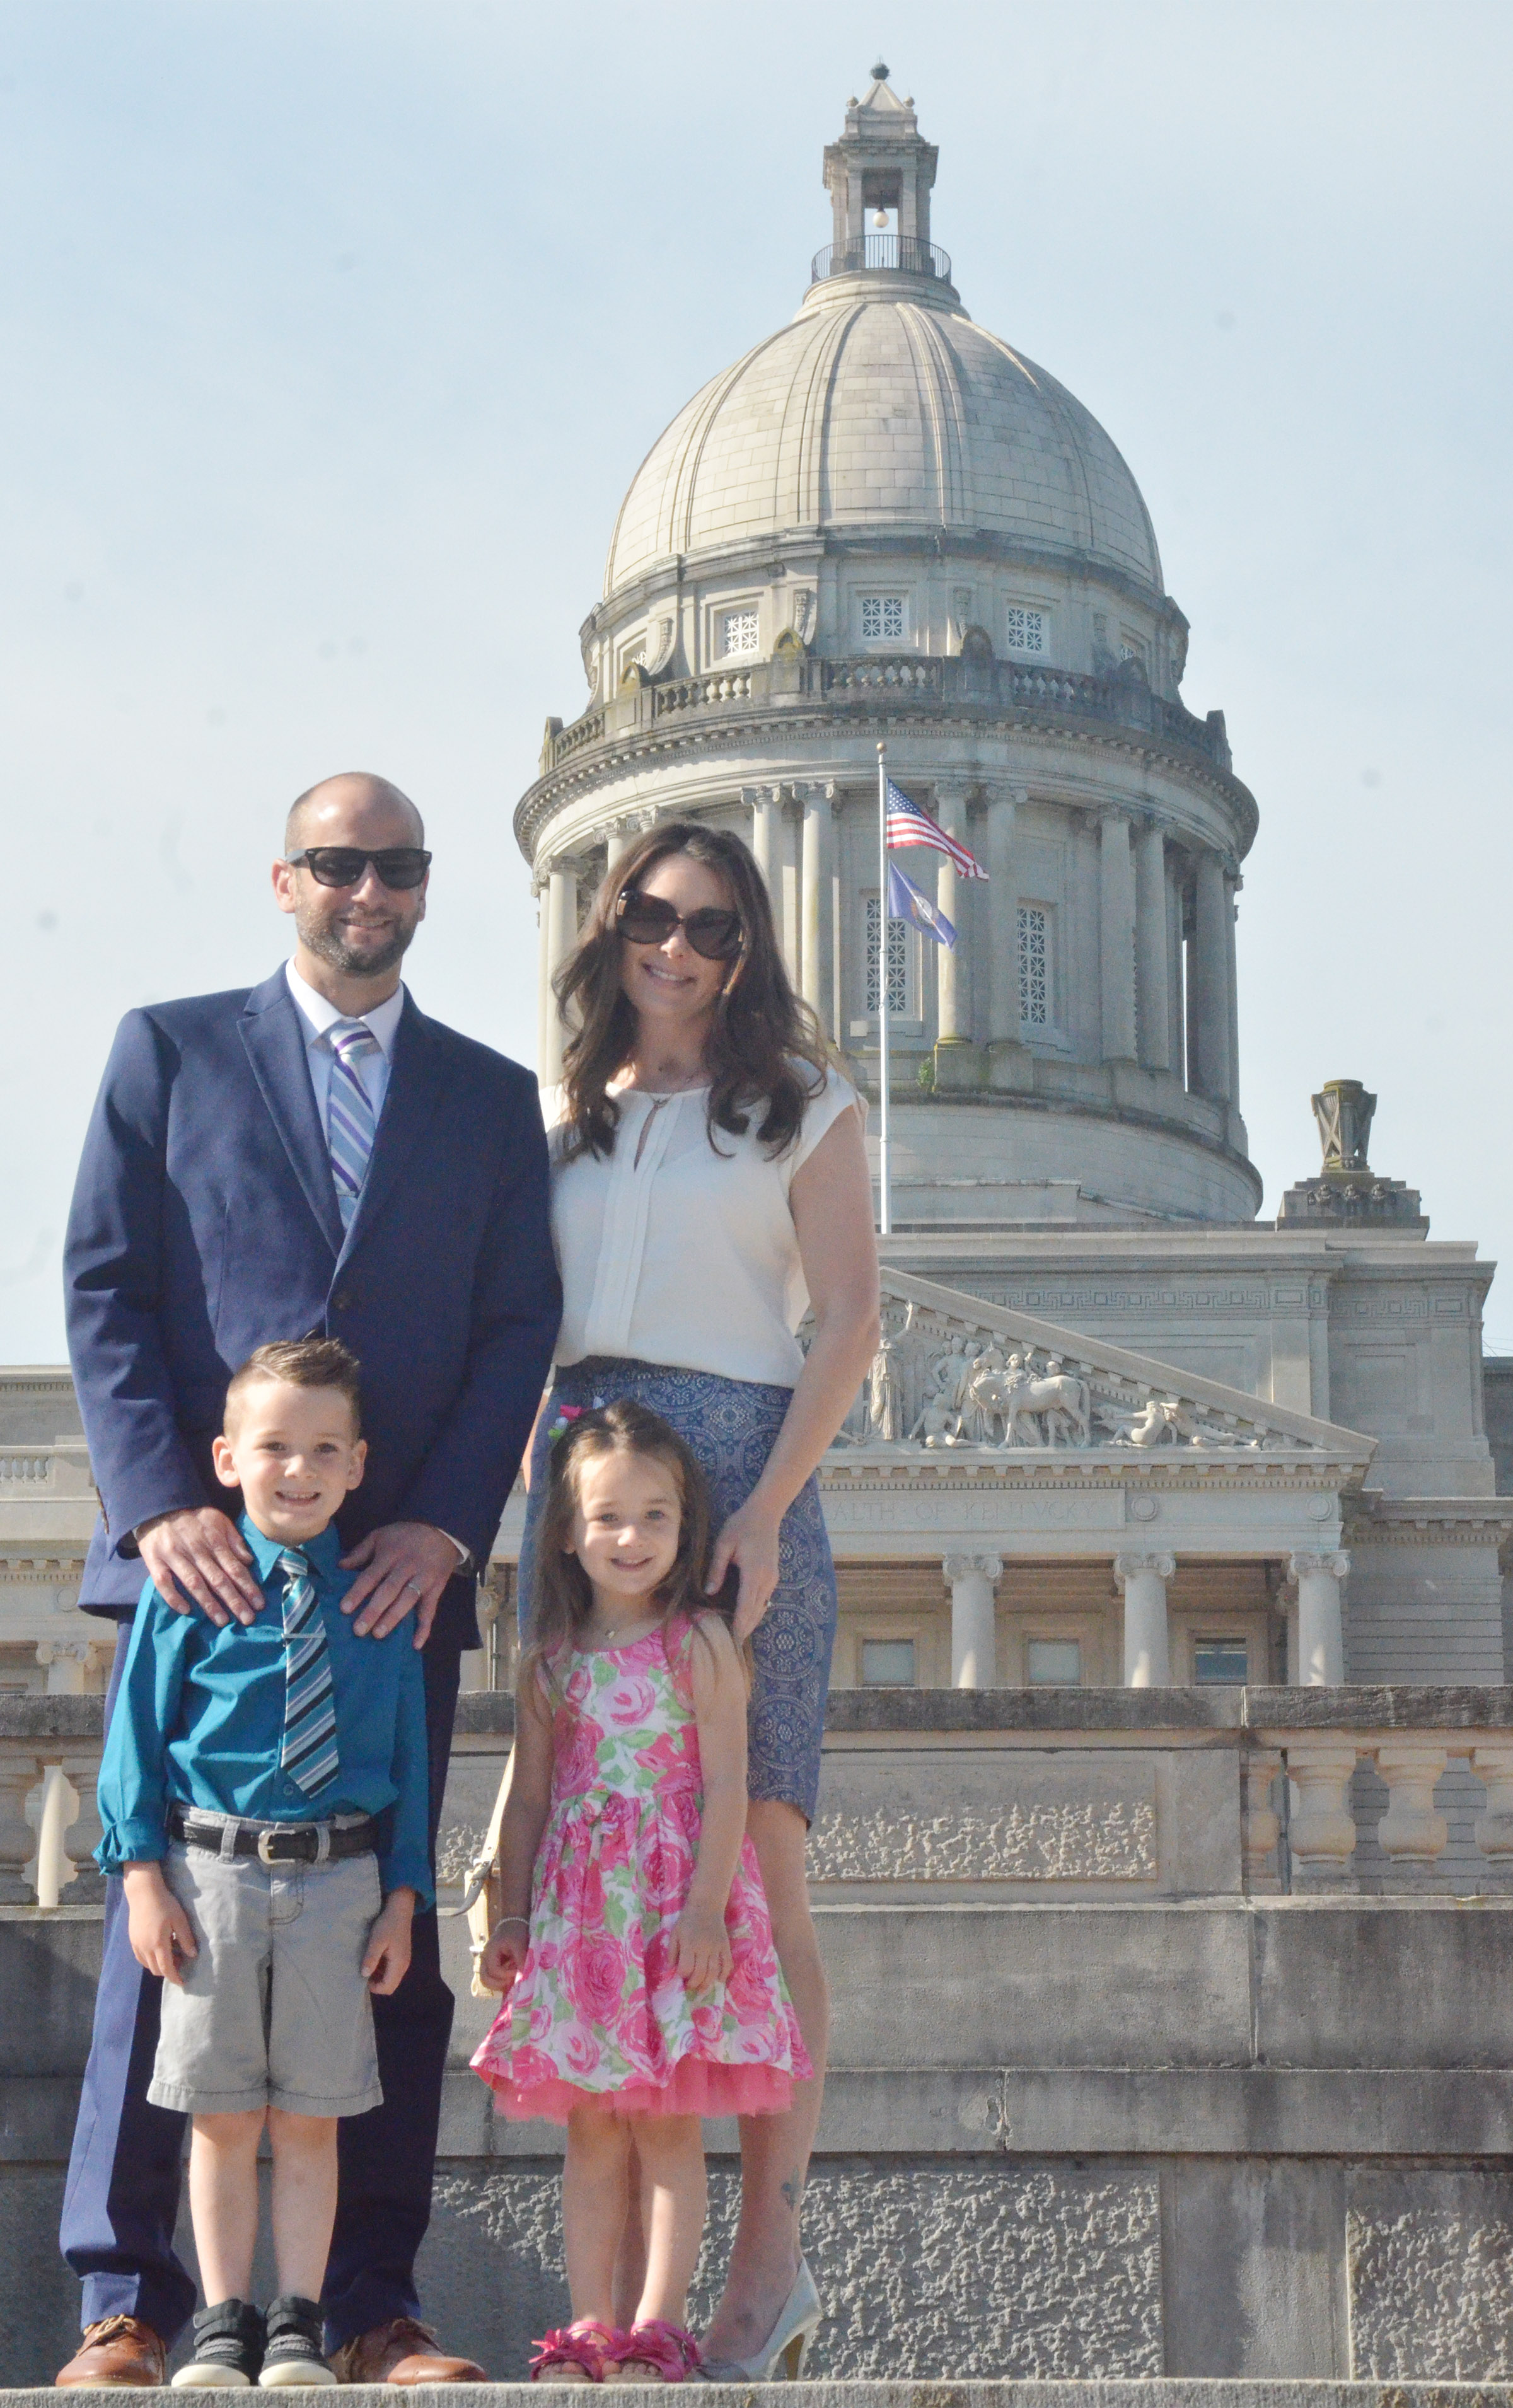 CHS teacher Ben Davis and his wife, Stephanie, pose for a photo in front of the Kentucky capitol with their children Cash and Lylah.